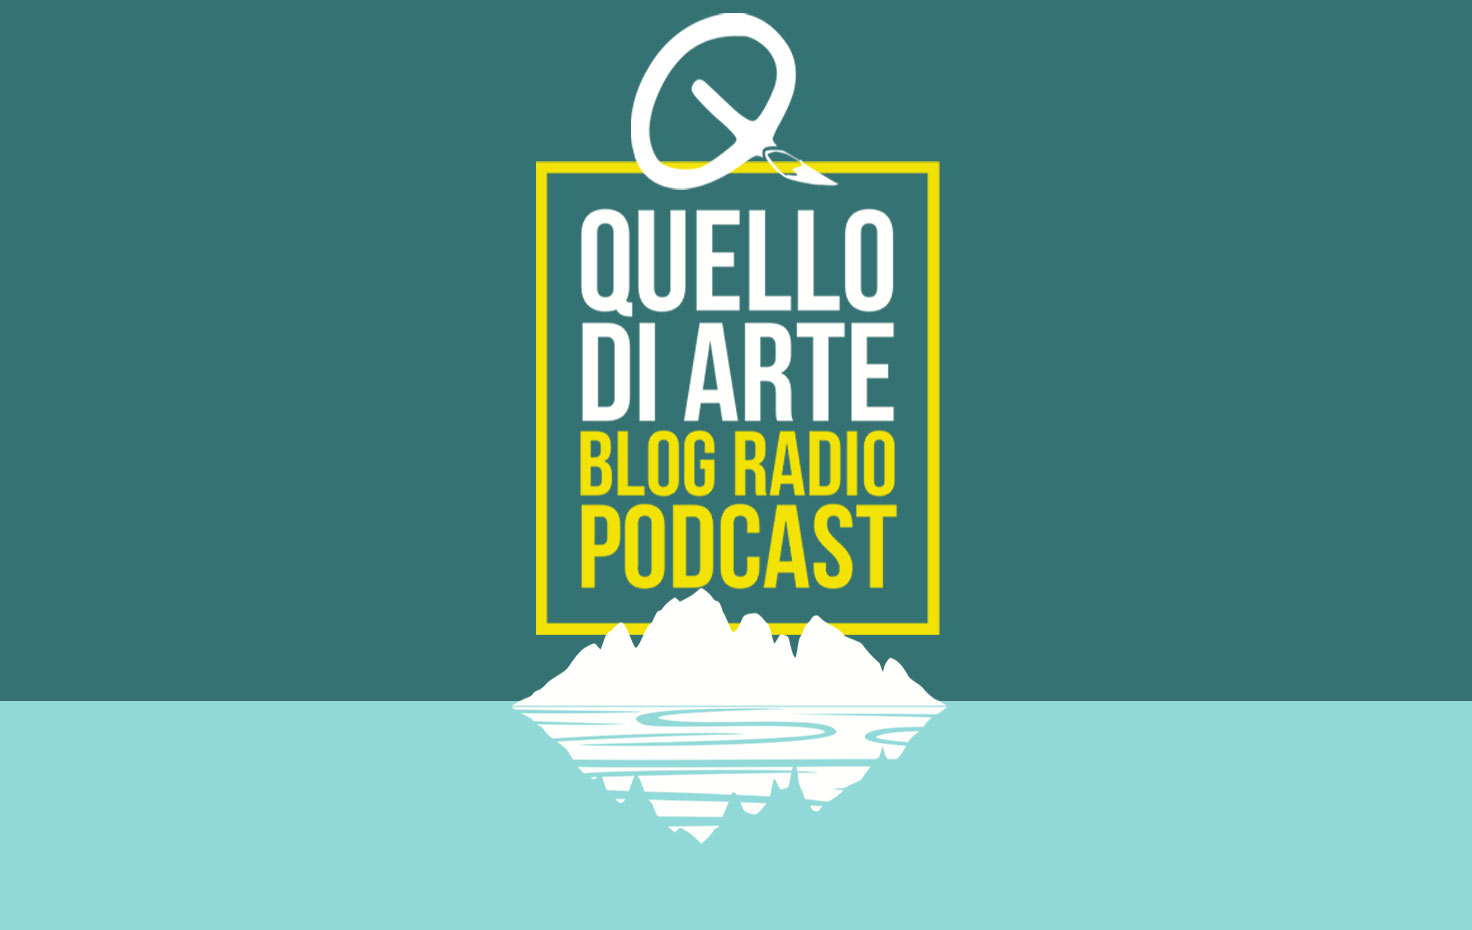 Arte Radio Podcast Quello Di Arte Blog Radio Podcast In Crowdfunding Su Eppela